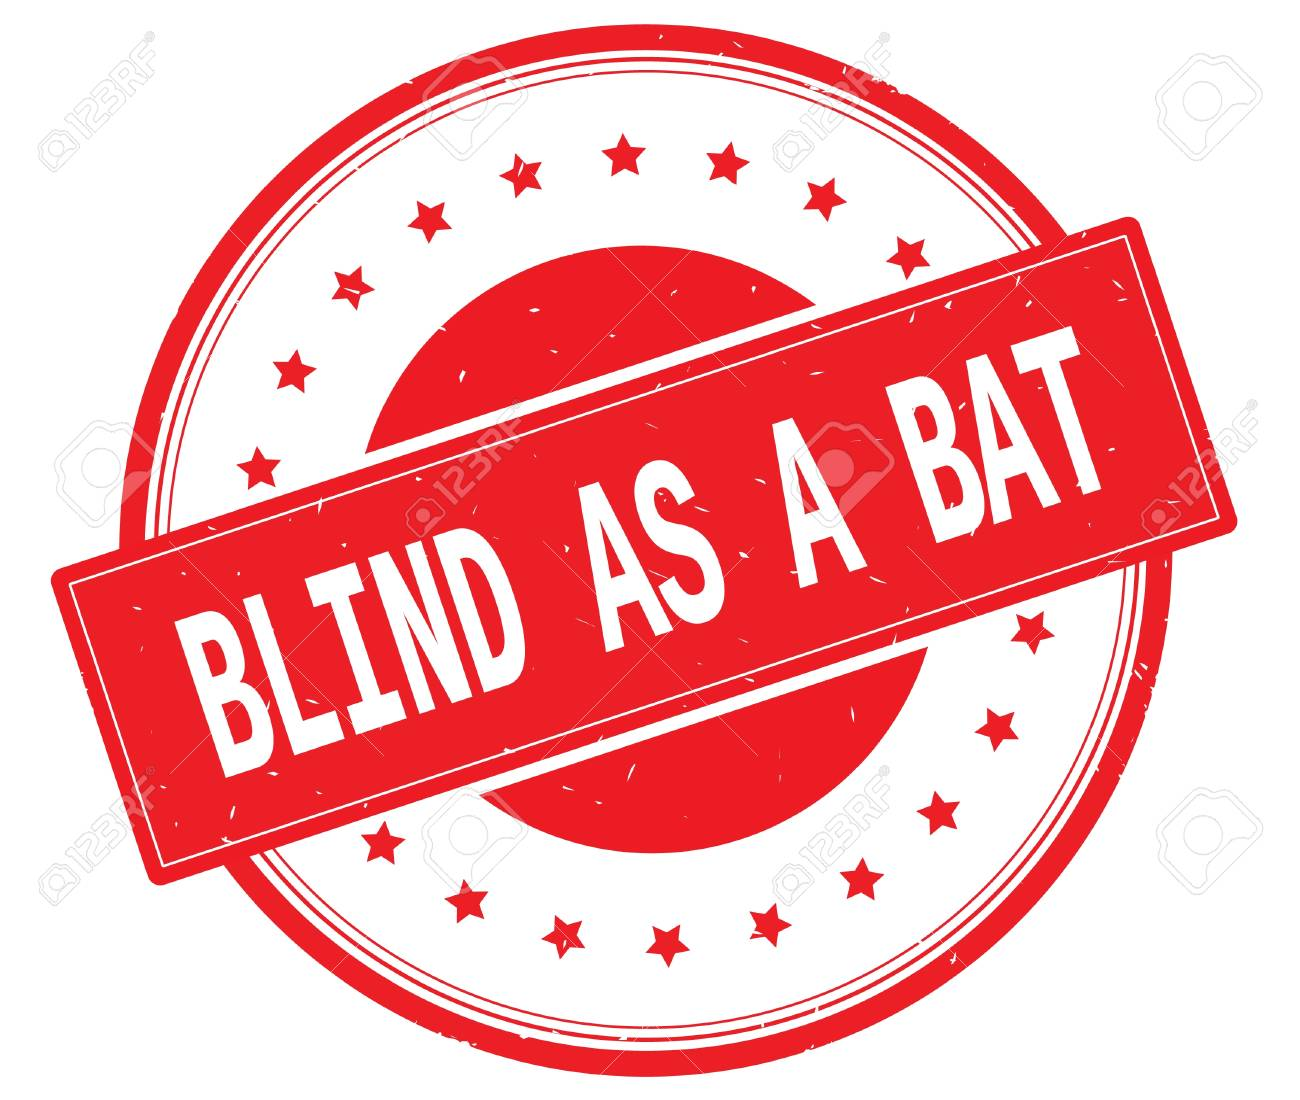 BLIND AS A BAT Text On Round Vintage Rubber Stamp Sign With Stars Red